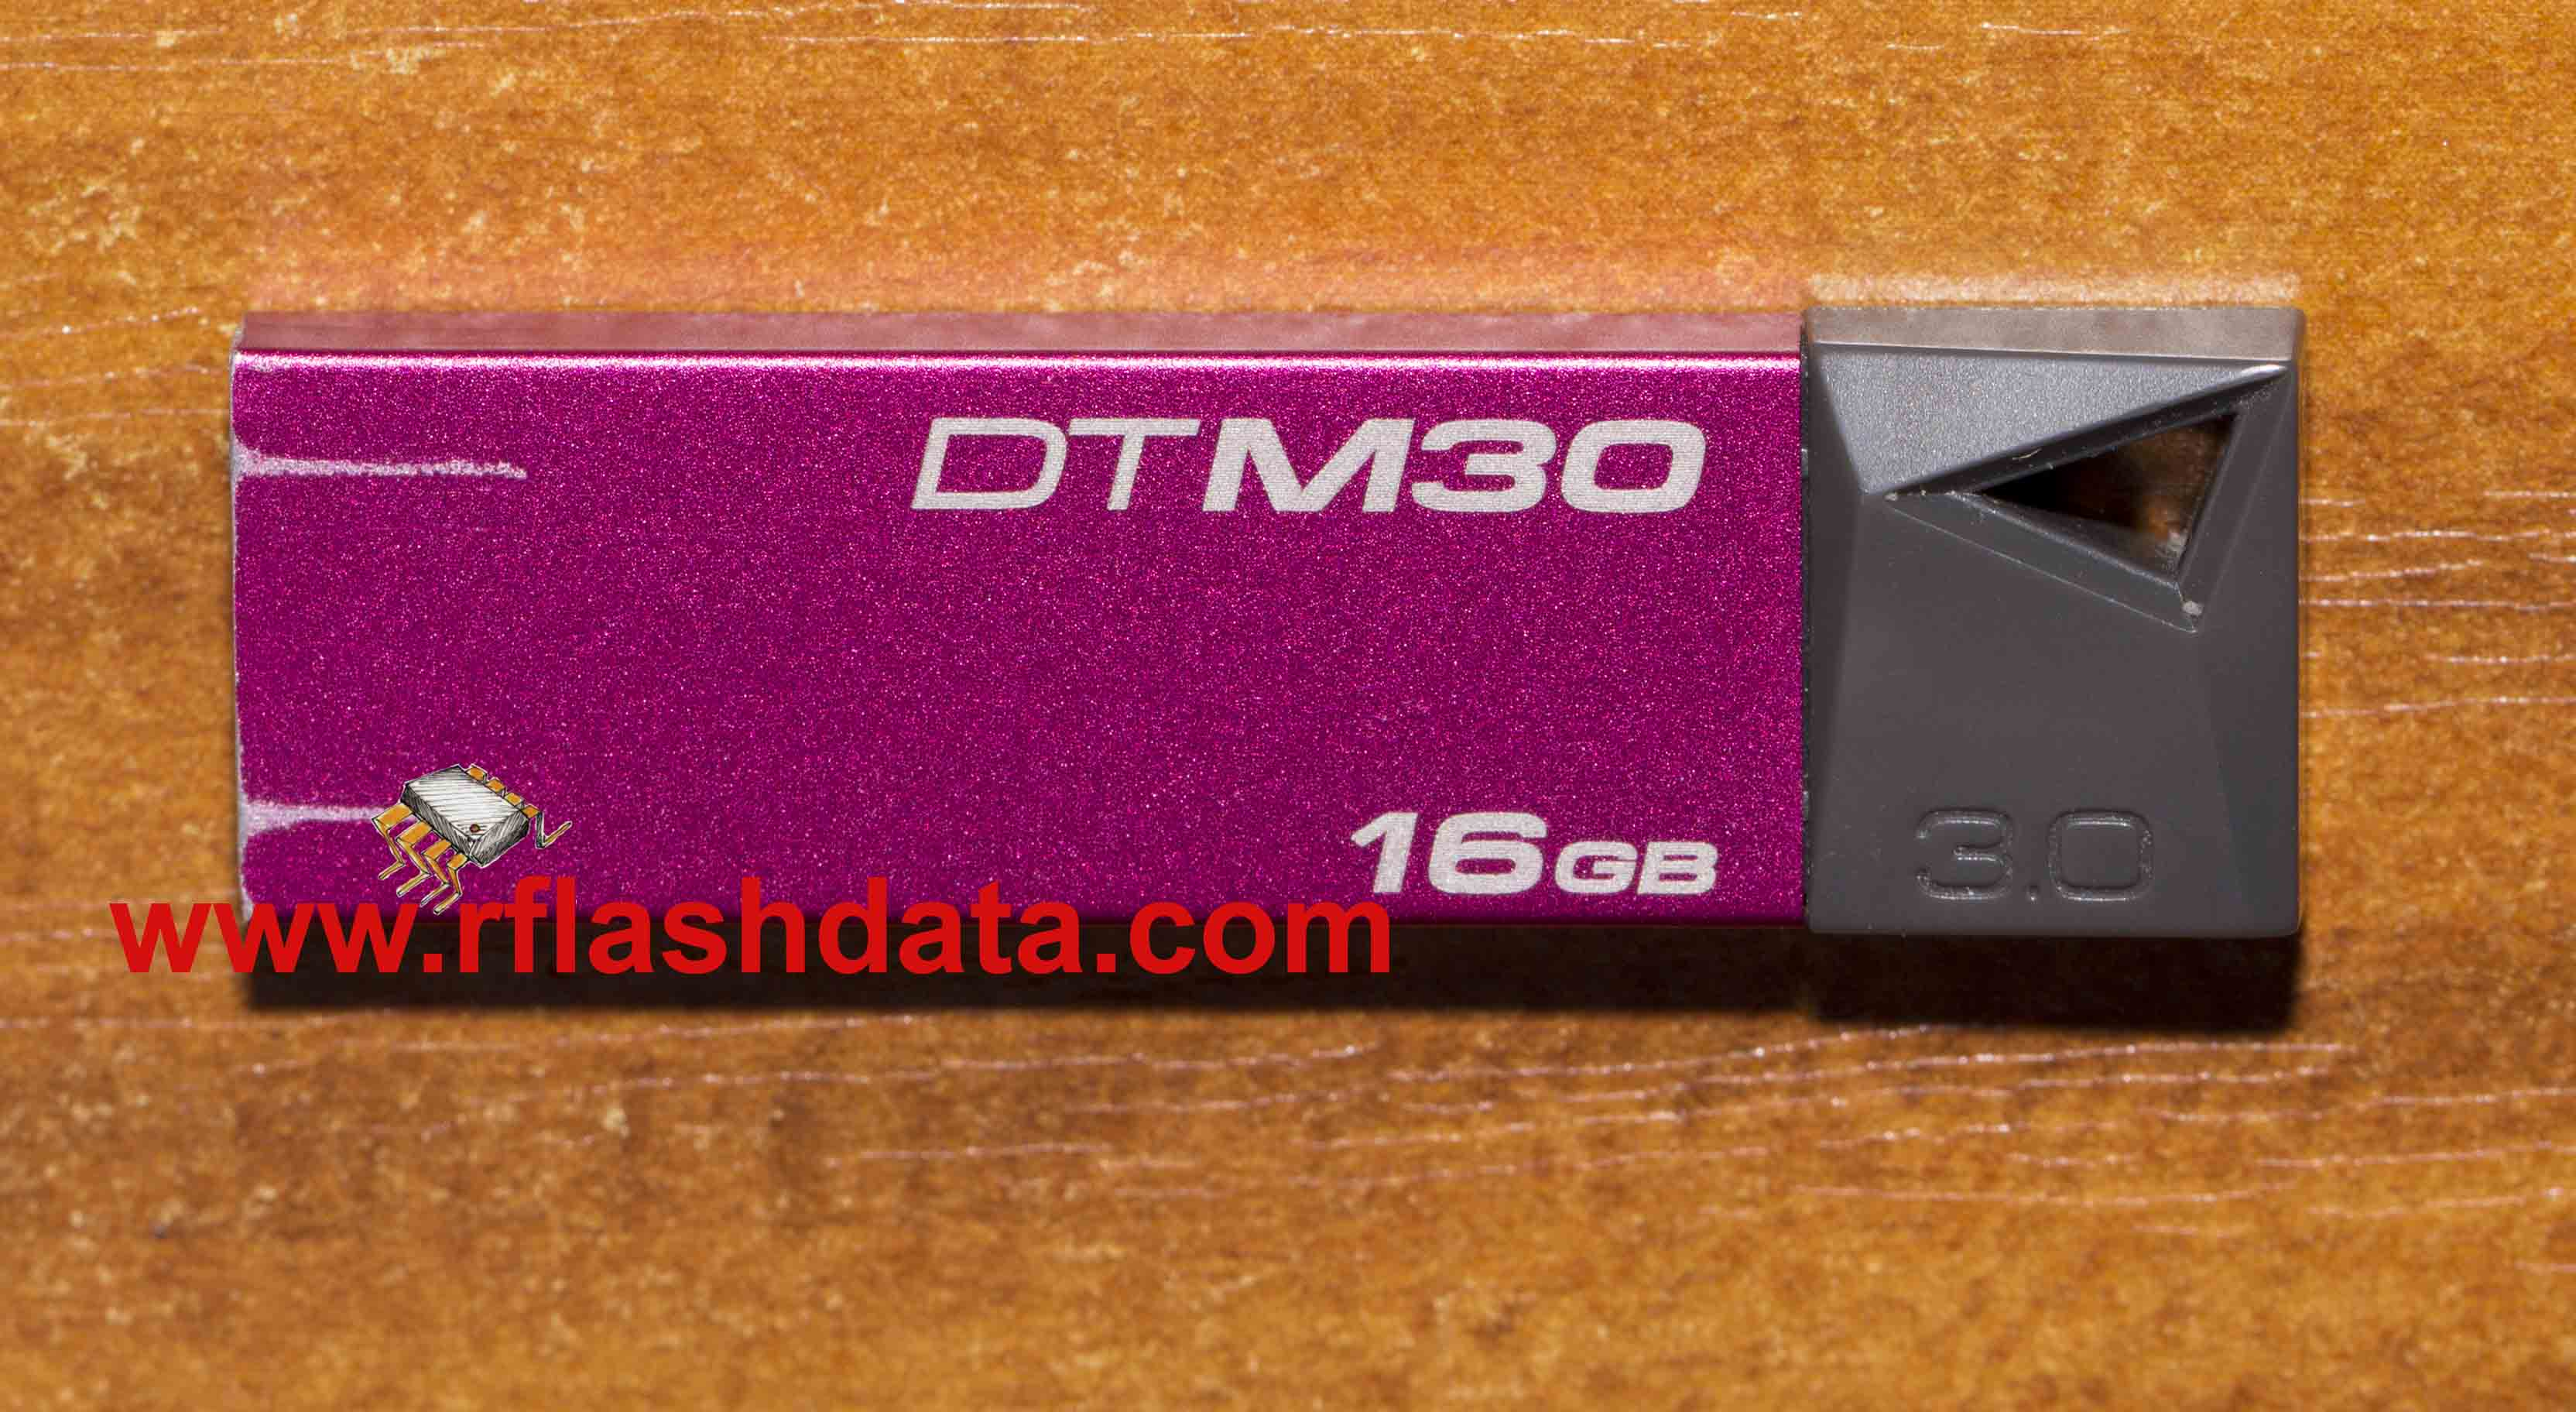 KIngston DTM30